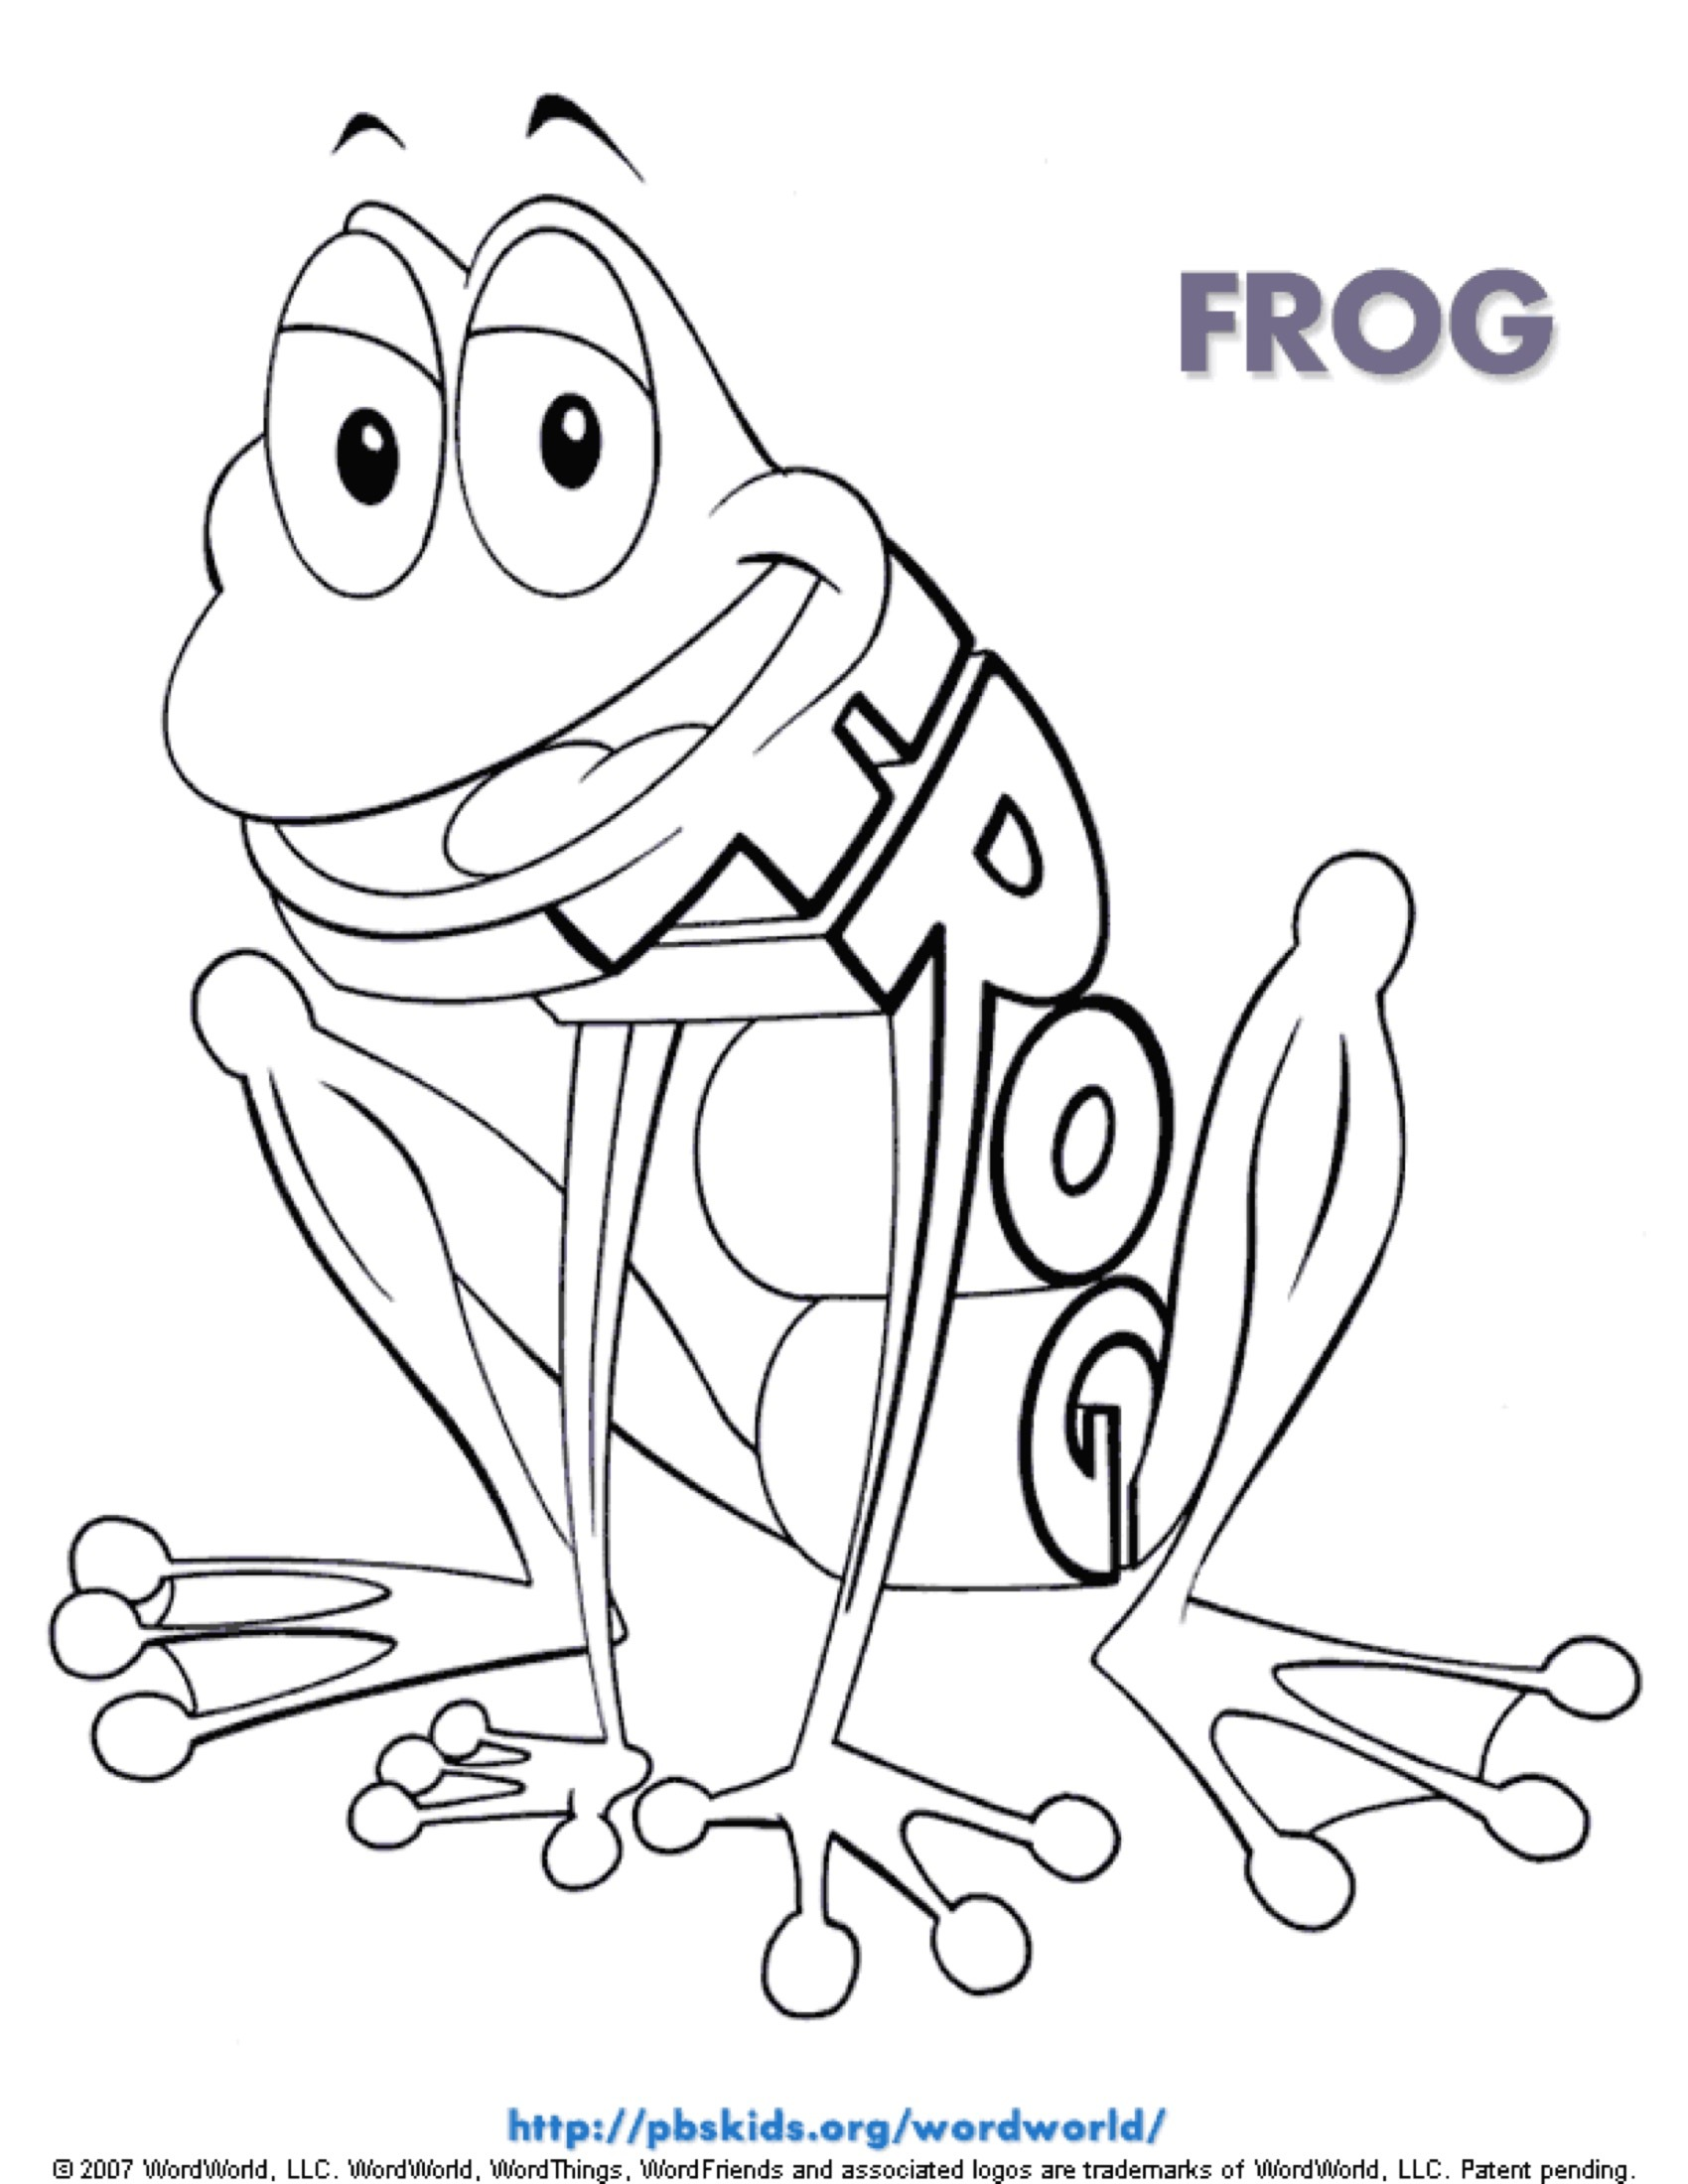 Frog Coloring Page | Kids Coloring Pages | PBS KIDS for Parents